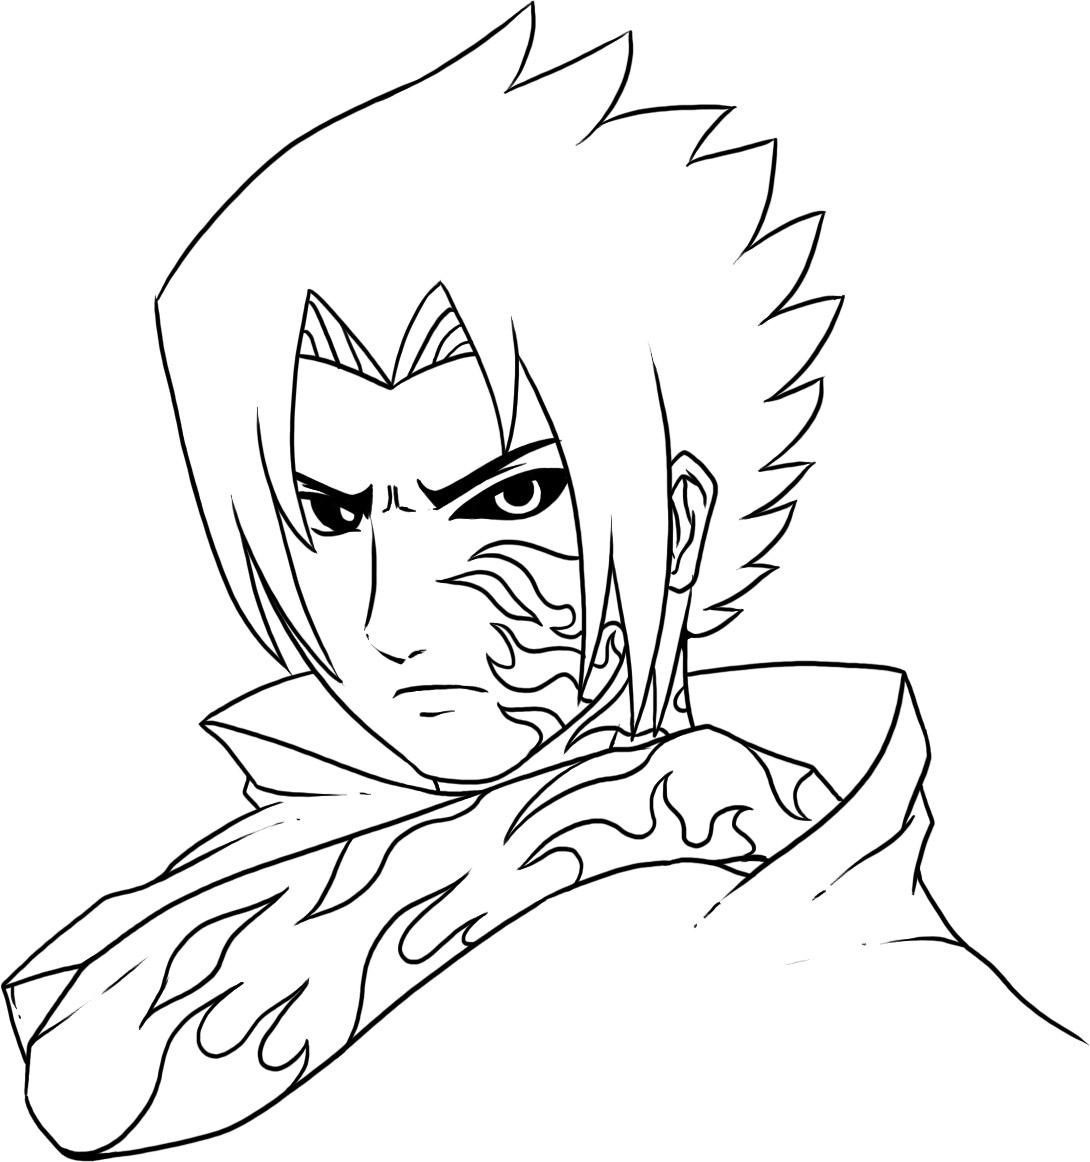 naruto print out coloring pages - photo#25